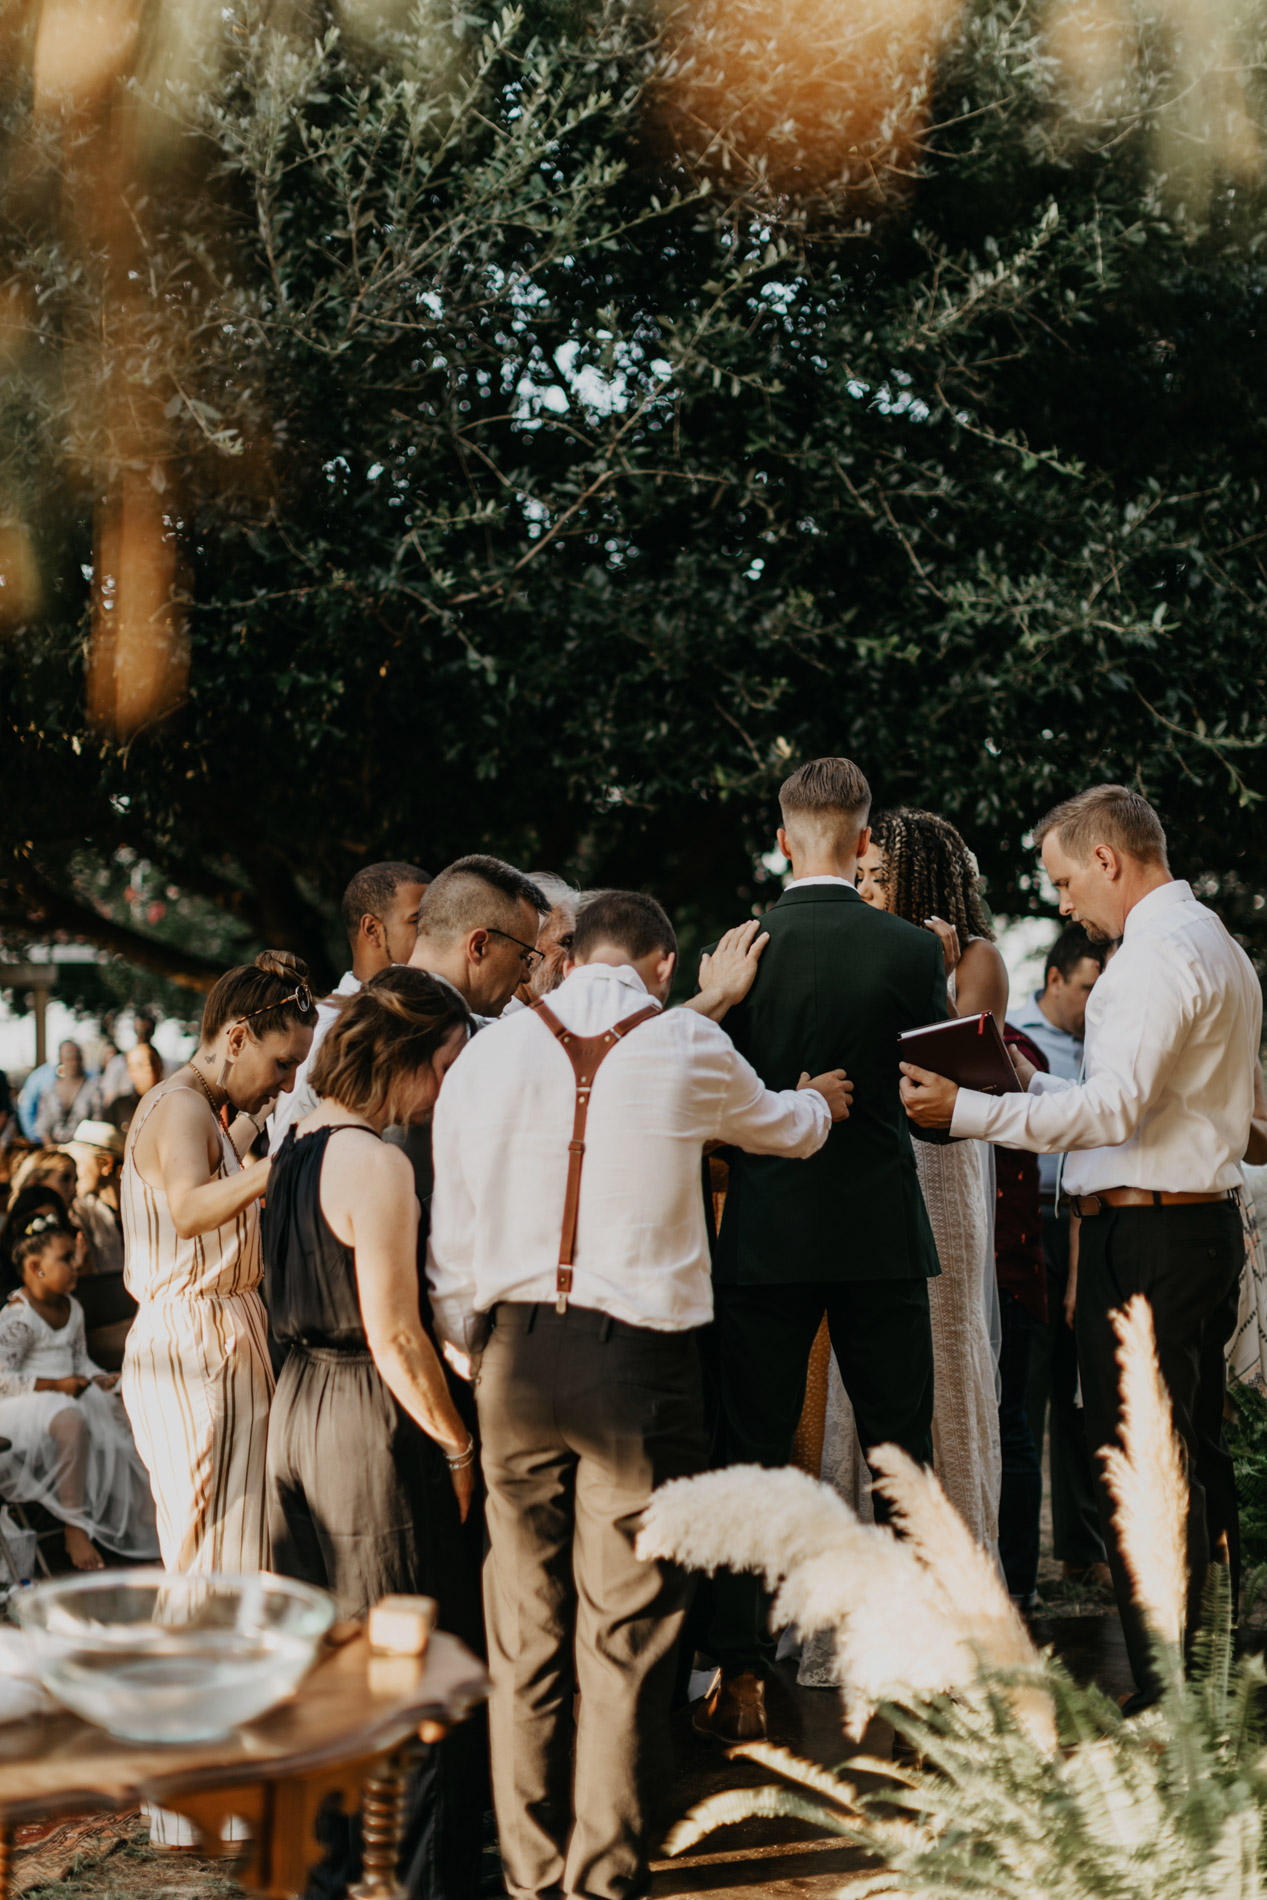 Bride and groom praying with family on wedding day